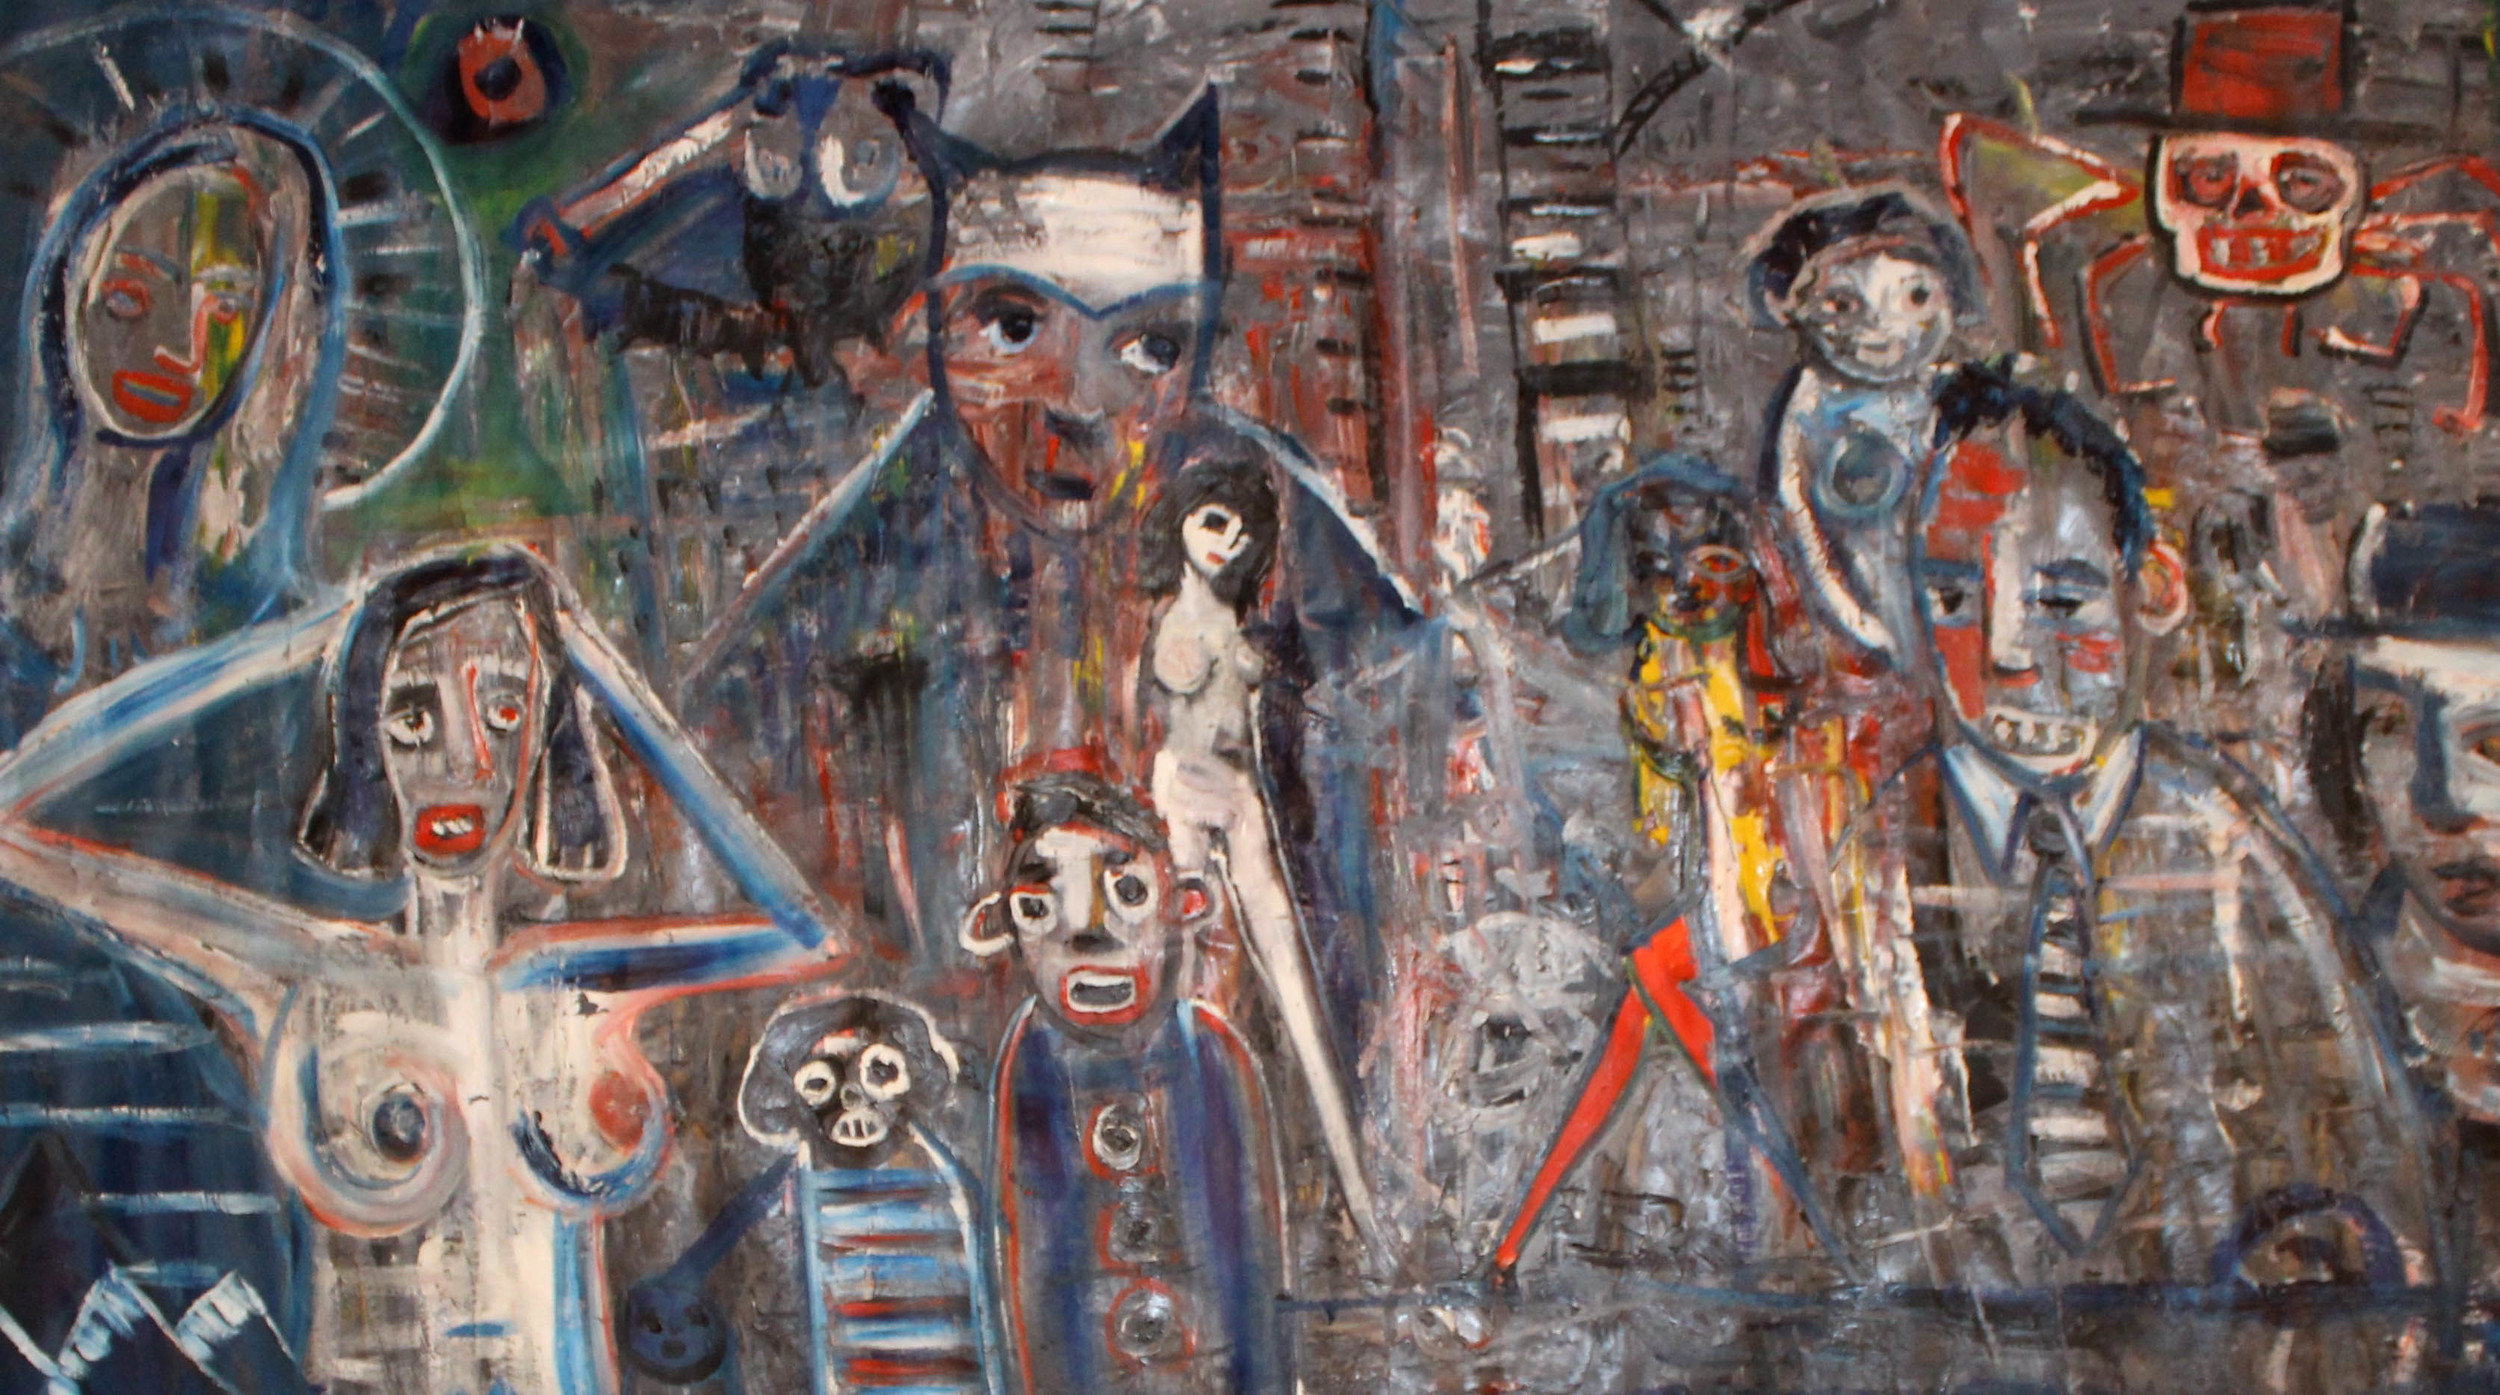 Noah Taylor, Untitled 2 170 x 100 cm, oil on canvas,available